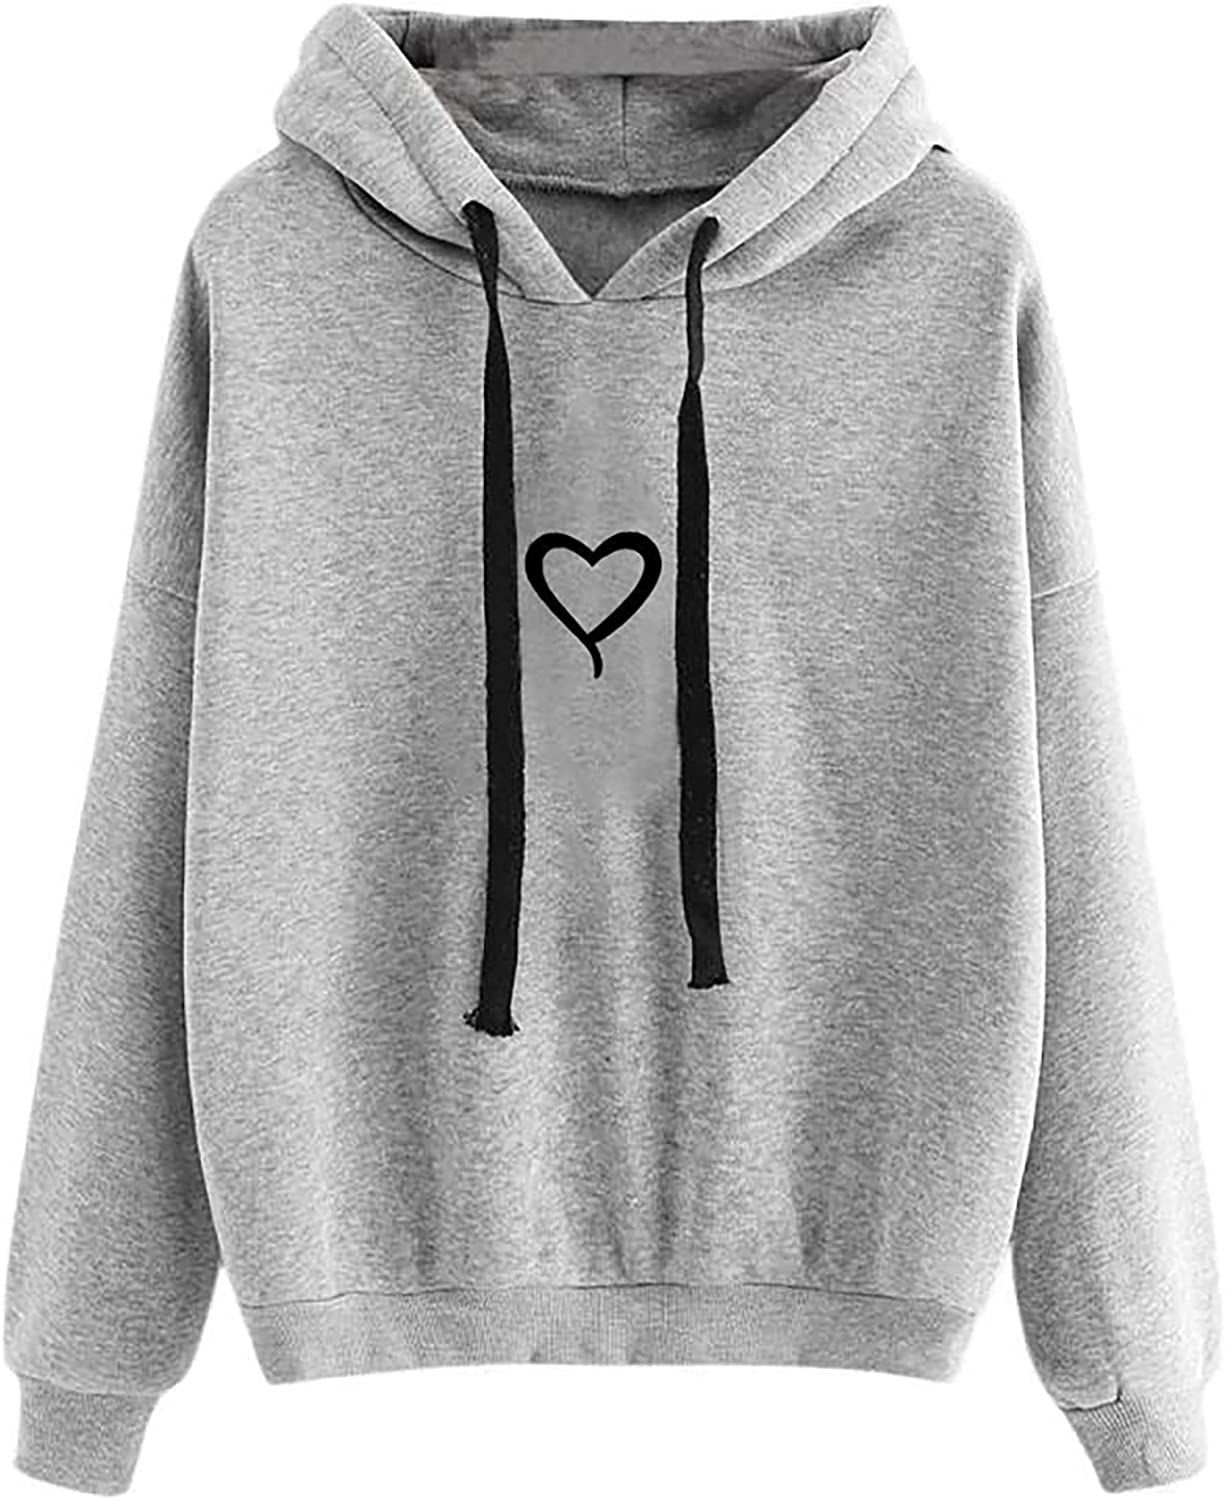 Hoodie Tops for Women Autumn and Winter Plus Size Sweatshirts Cute Printing Long Sleeve Pullover Hoodies Blouse